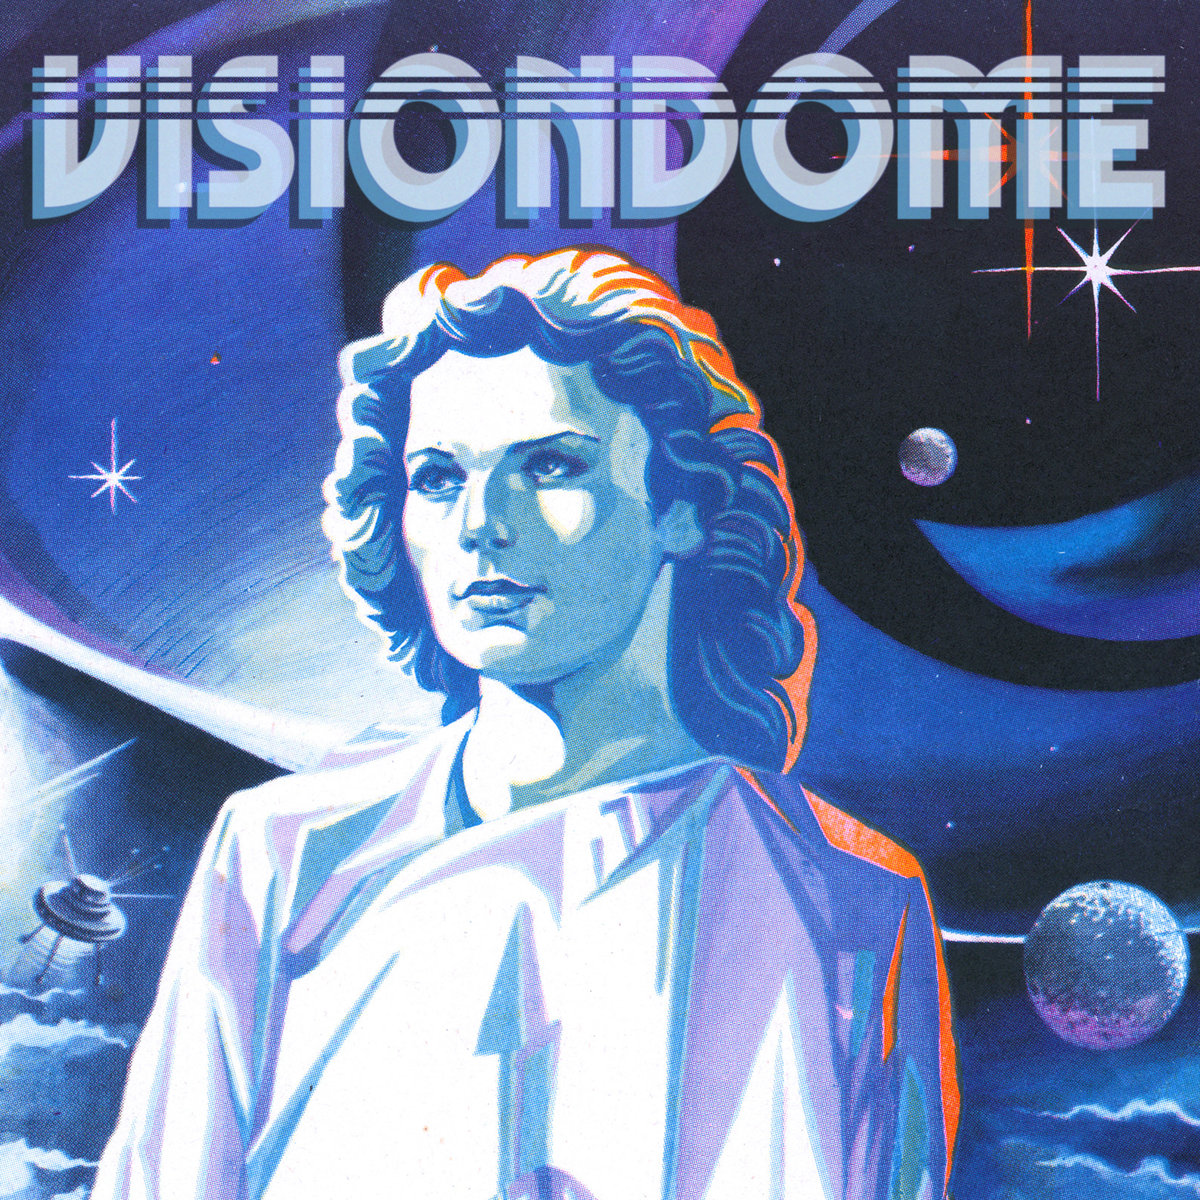 a4137702222 10 1 - Highway Superstar - Visiondome